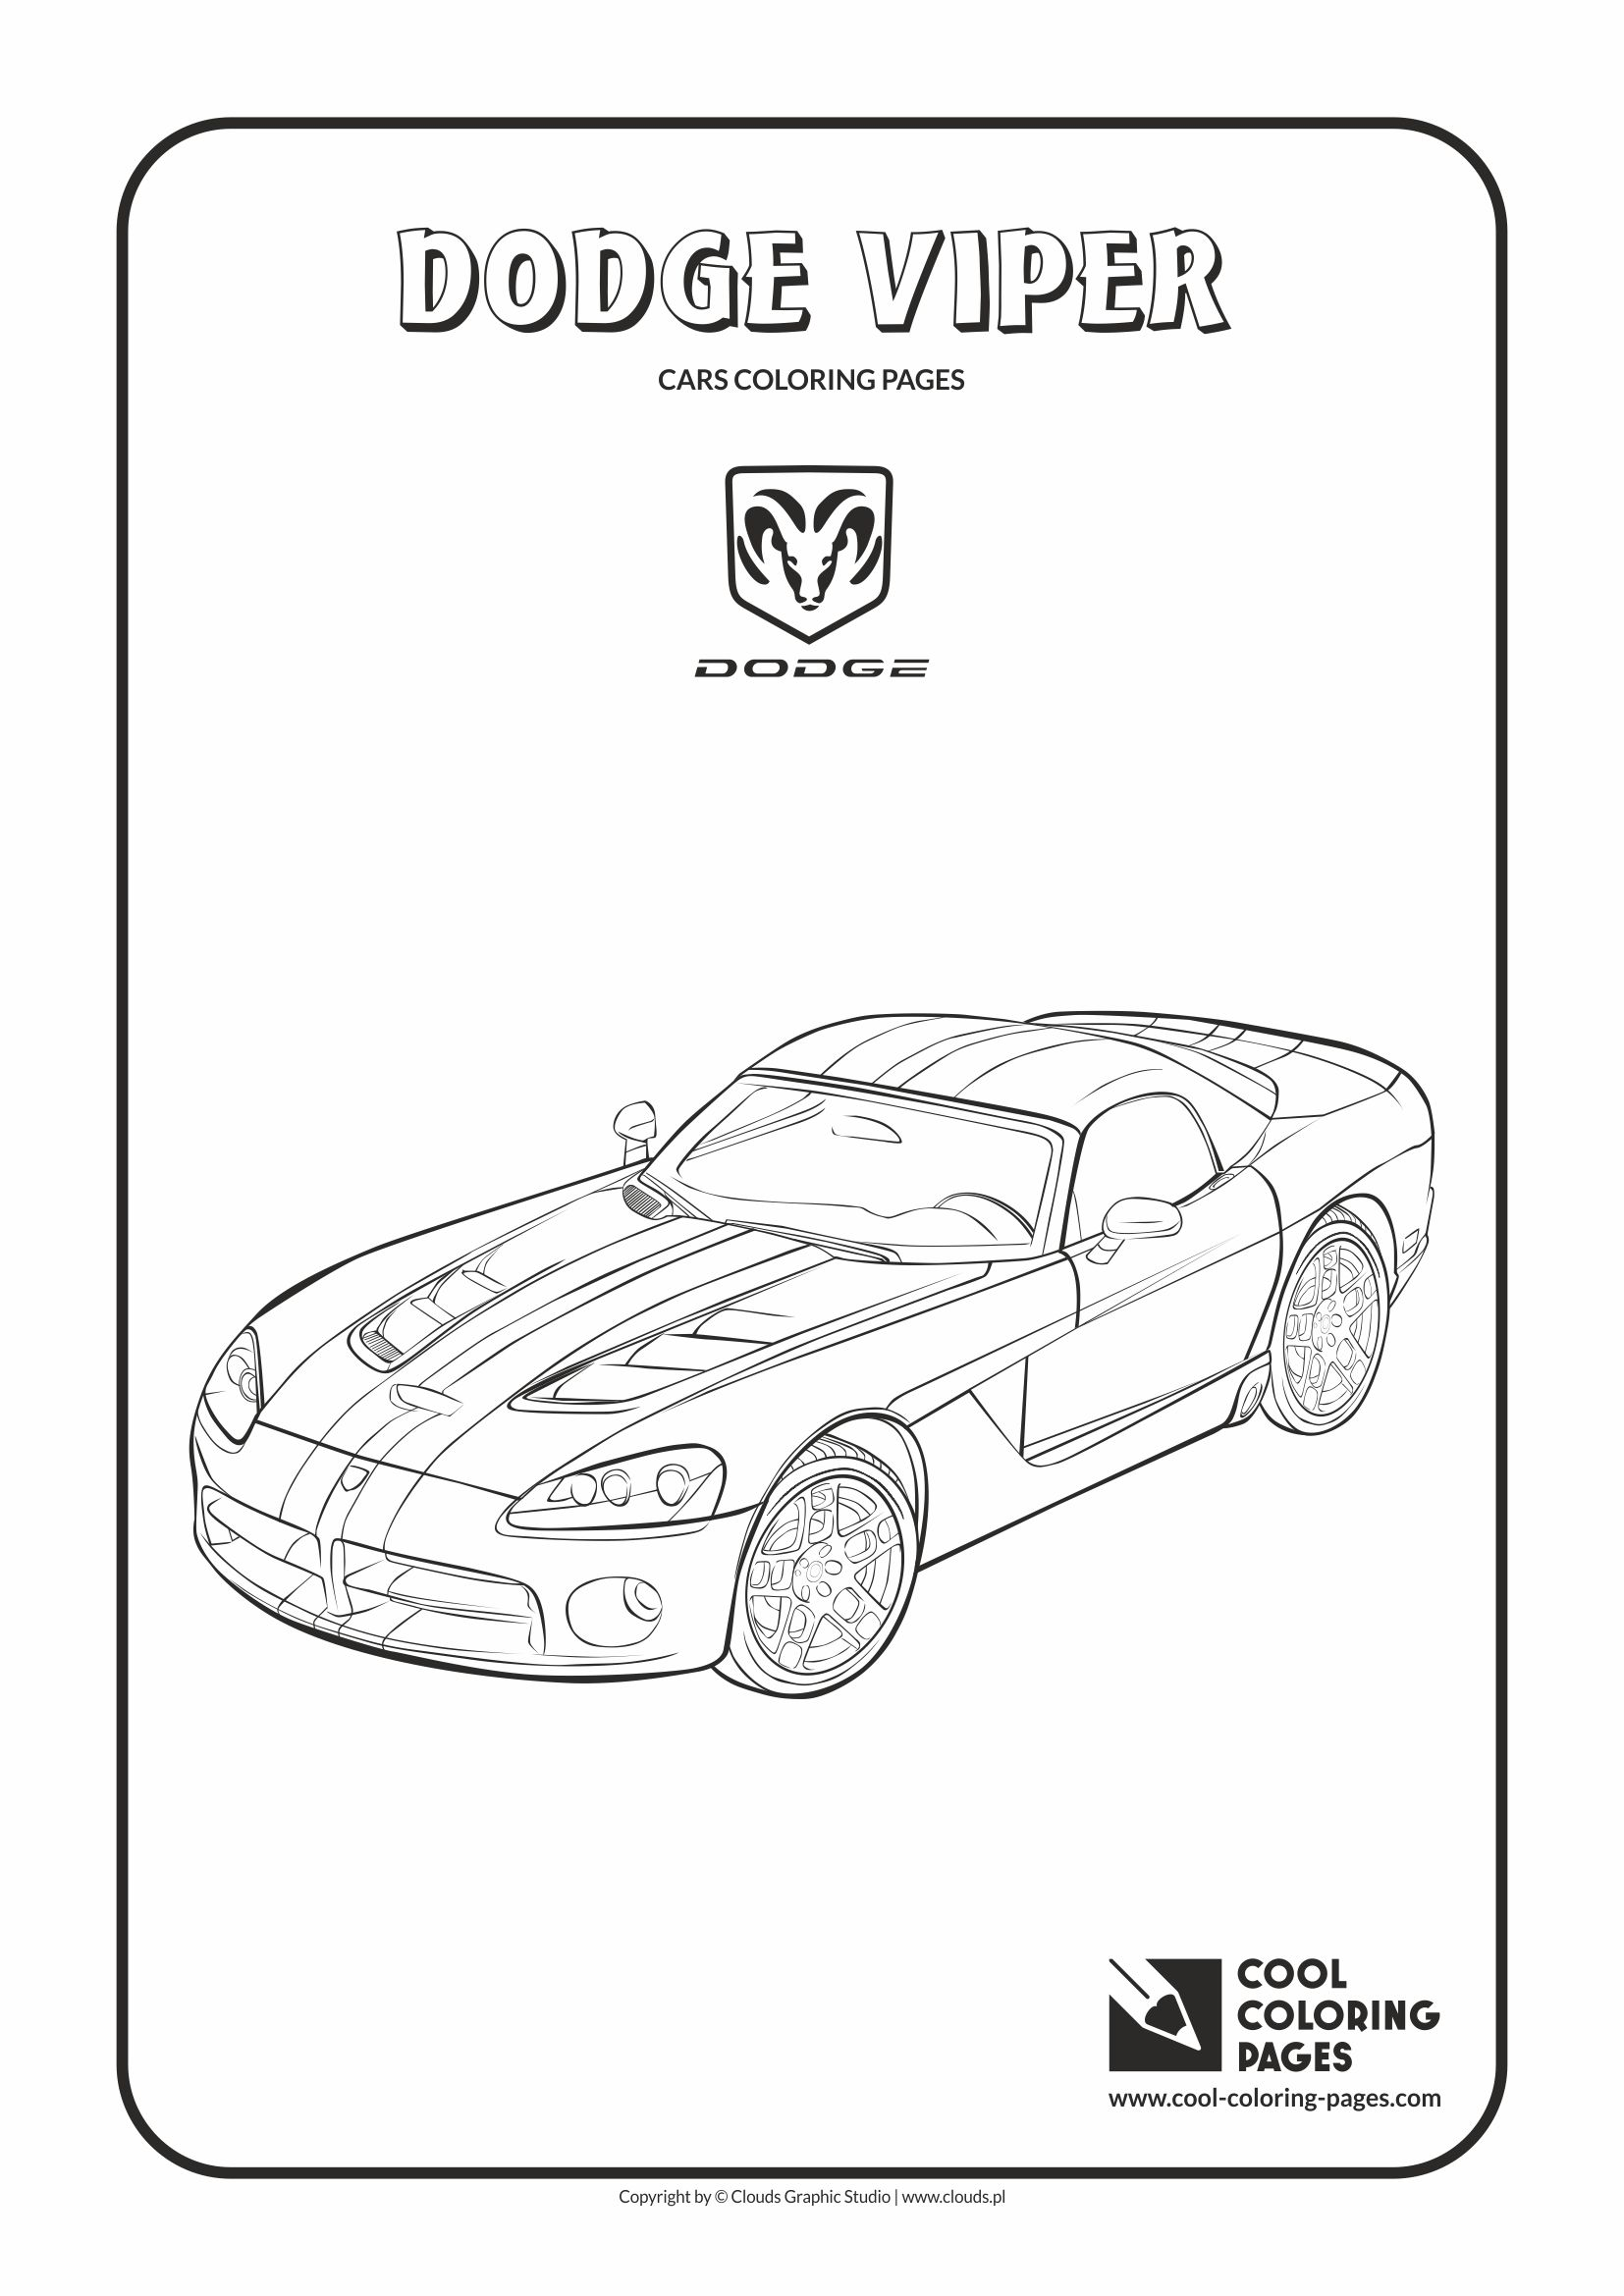 Cool Coloring Pages - Vehicles / Dodge Viper / Coloring page with Dodge Viper